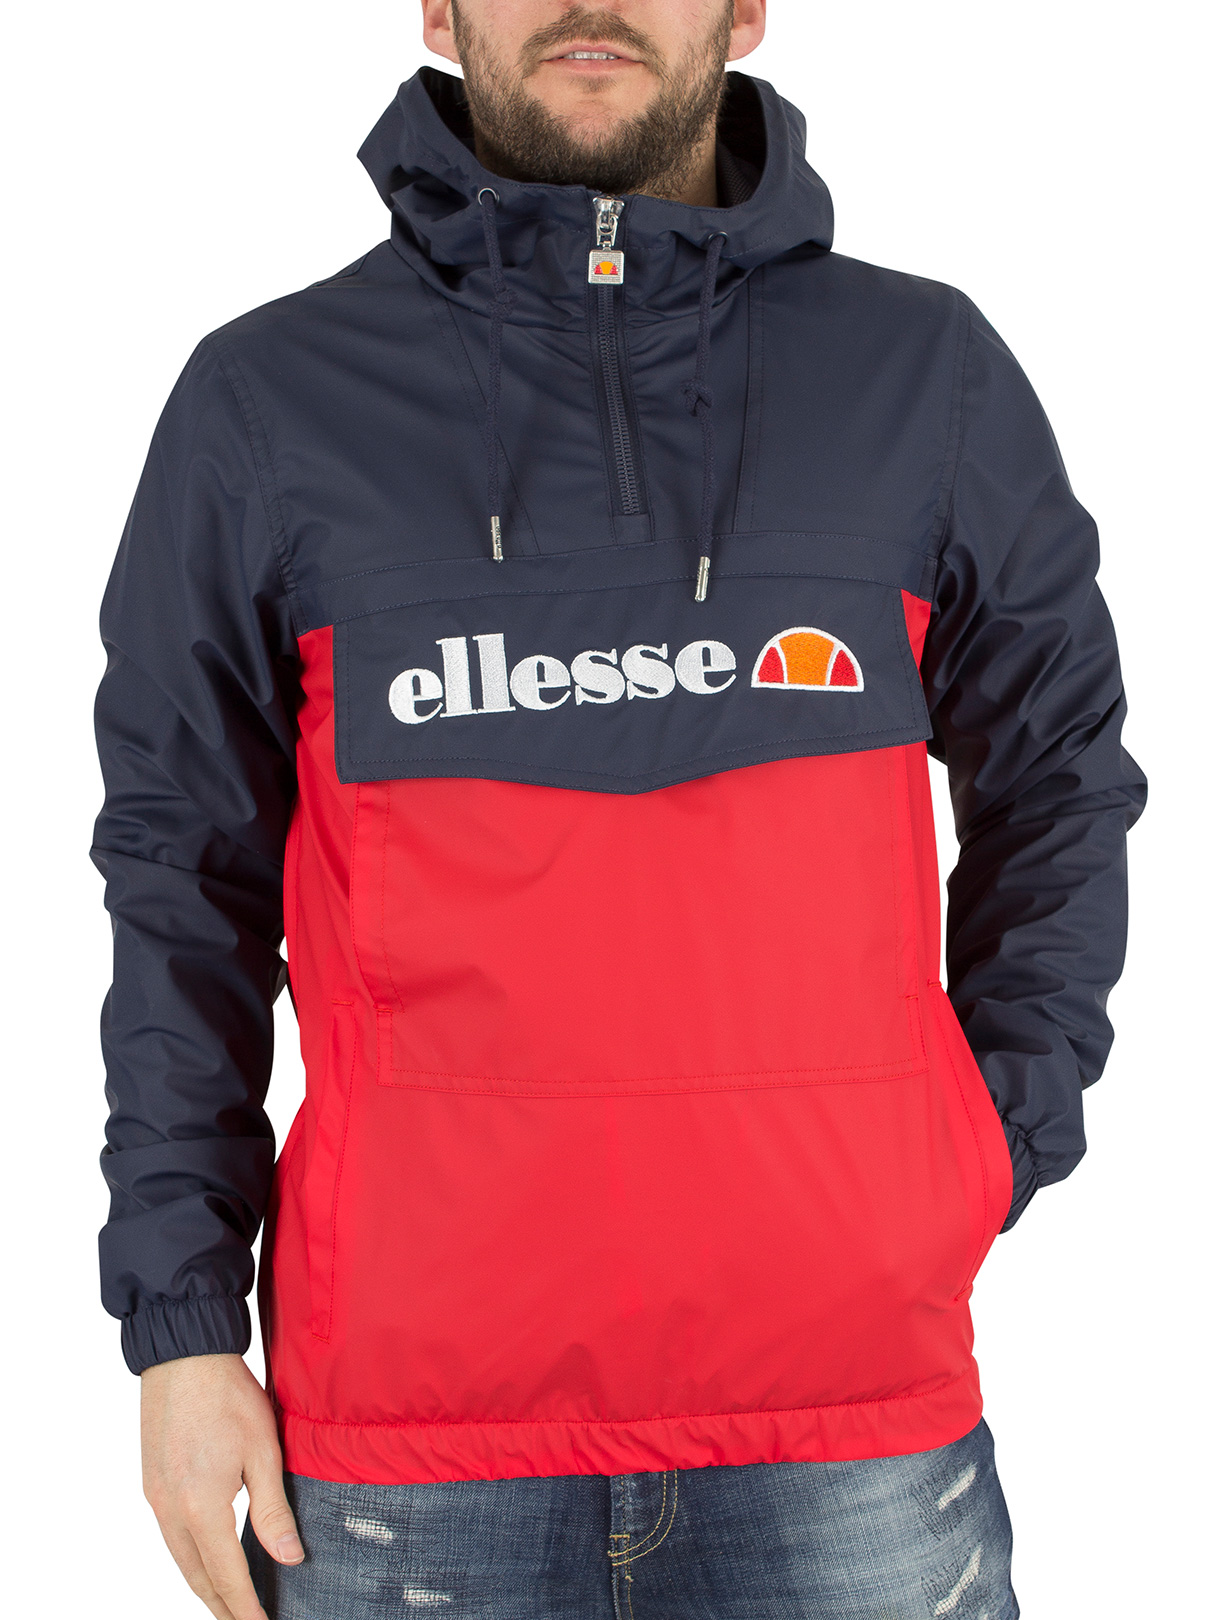 ellesse dress blues true red mont brava logo jacket. Black Bedroom Furniture Sets. Home Design Ideas